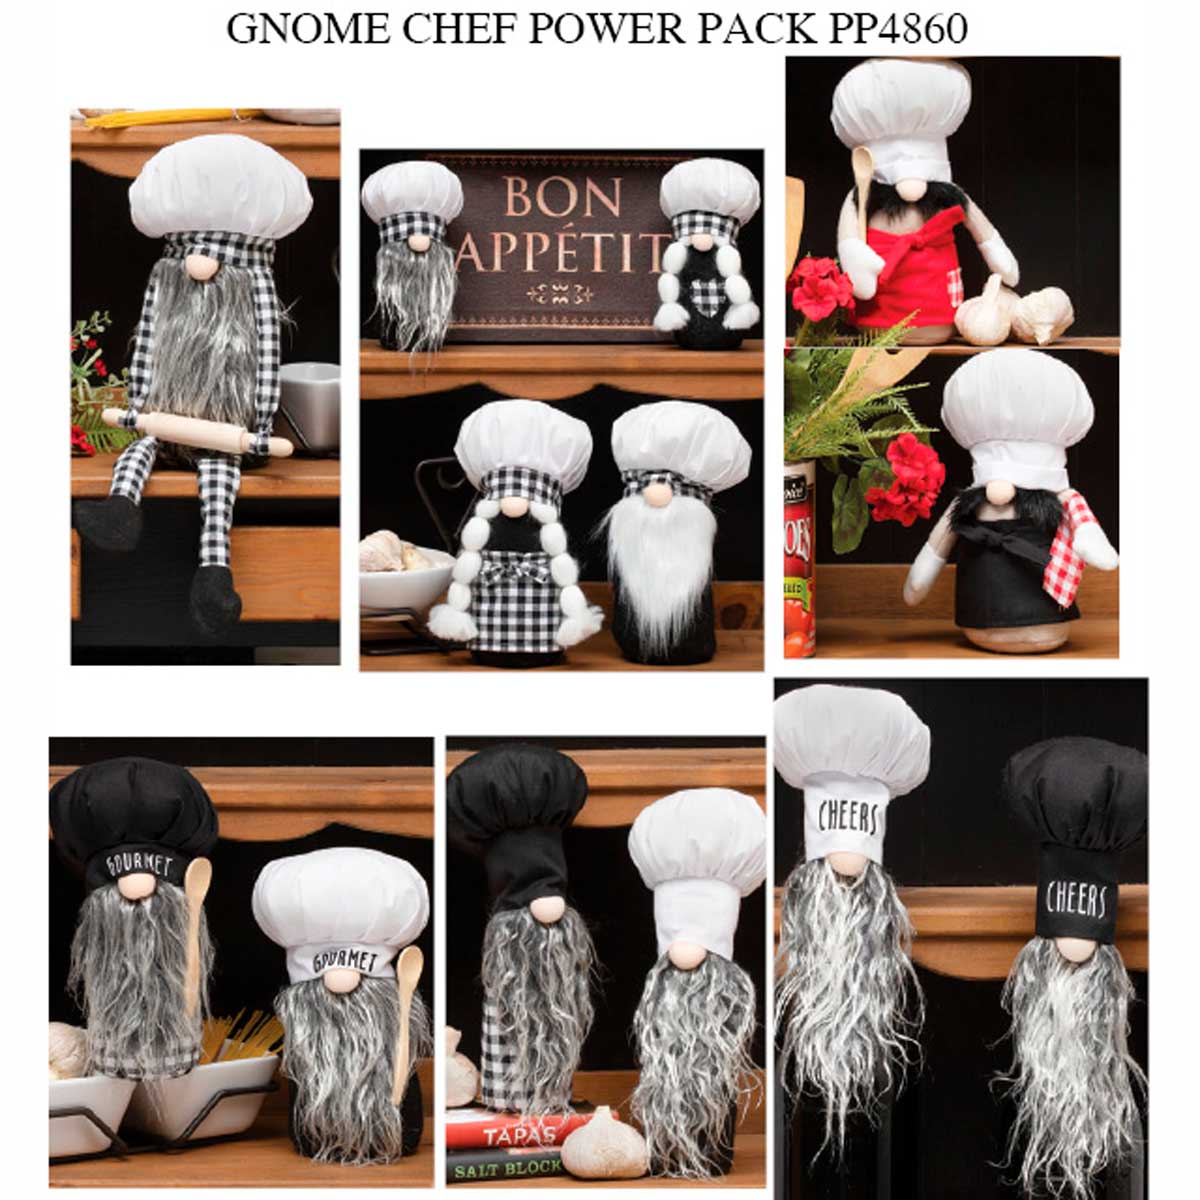 Gourmet Chef Power Pack 26 Units PP4860